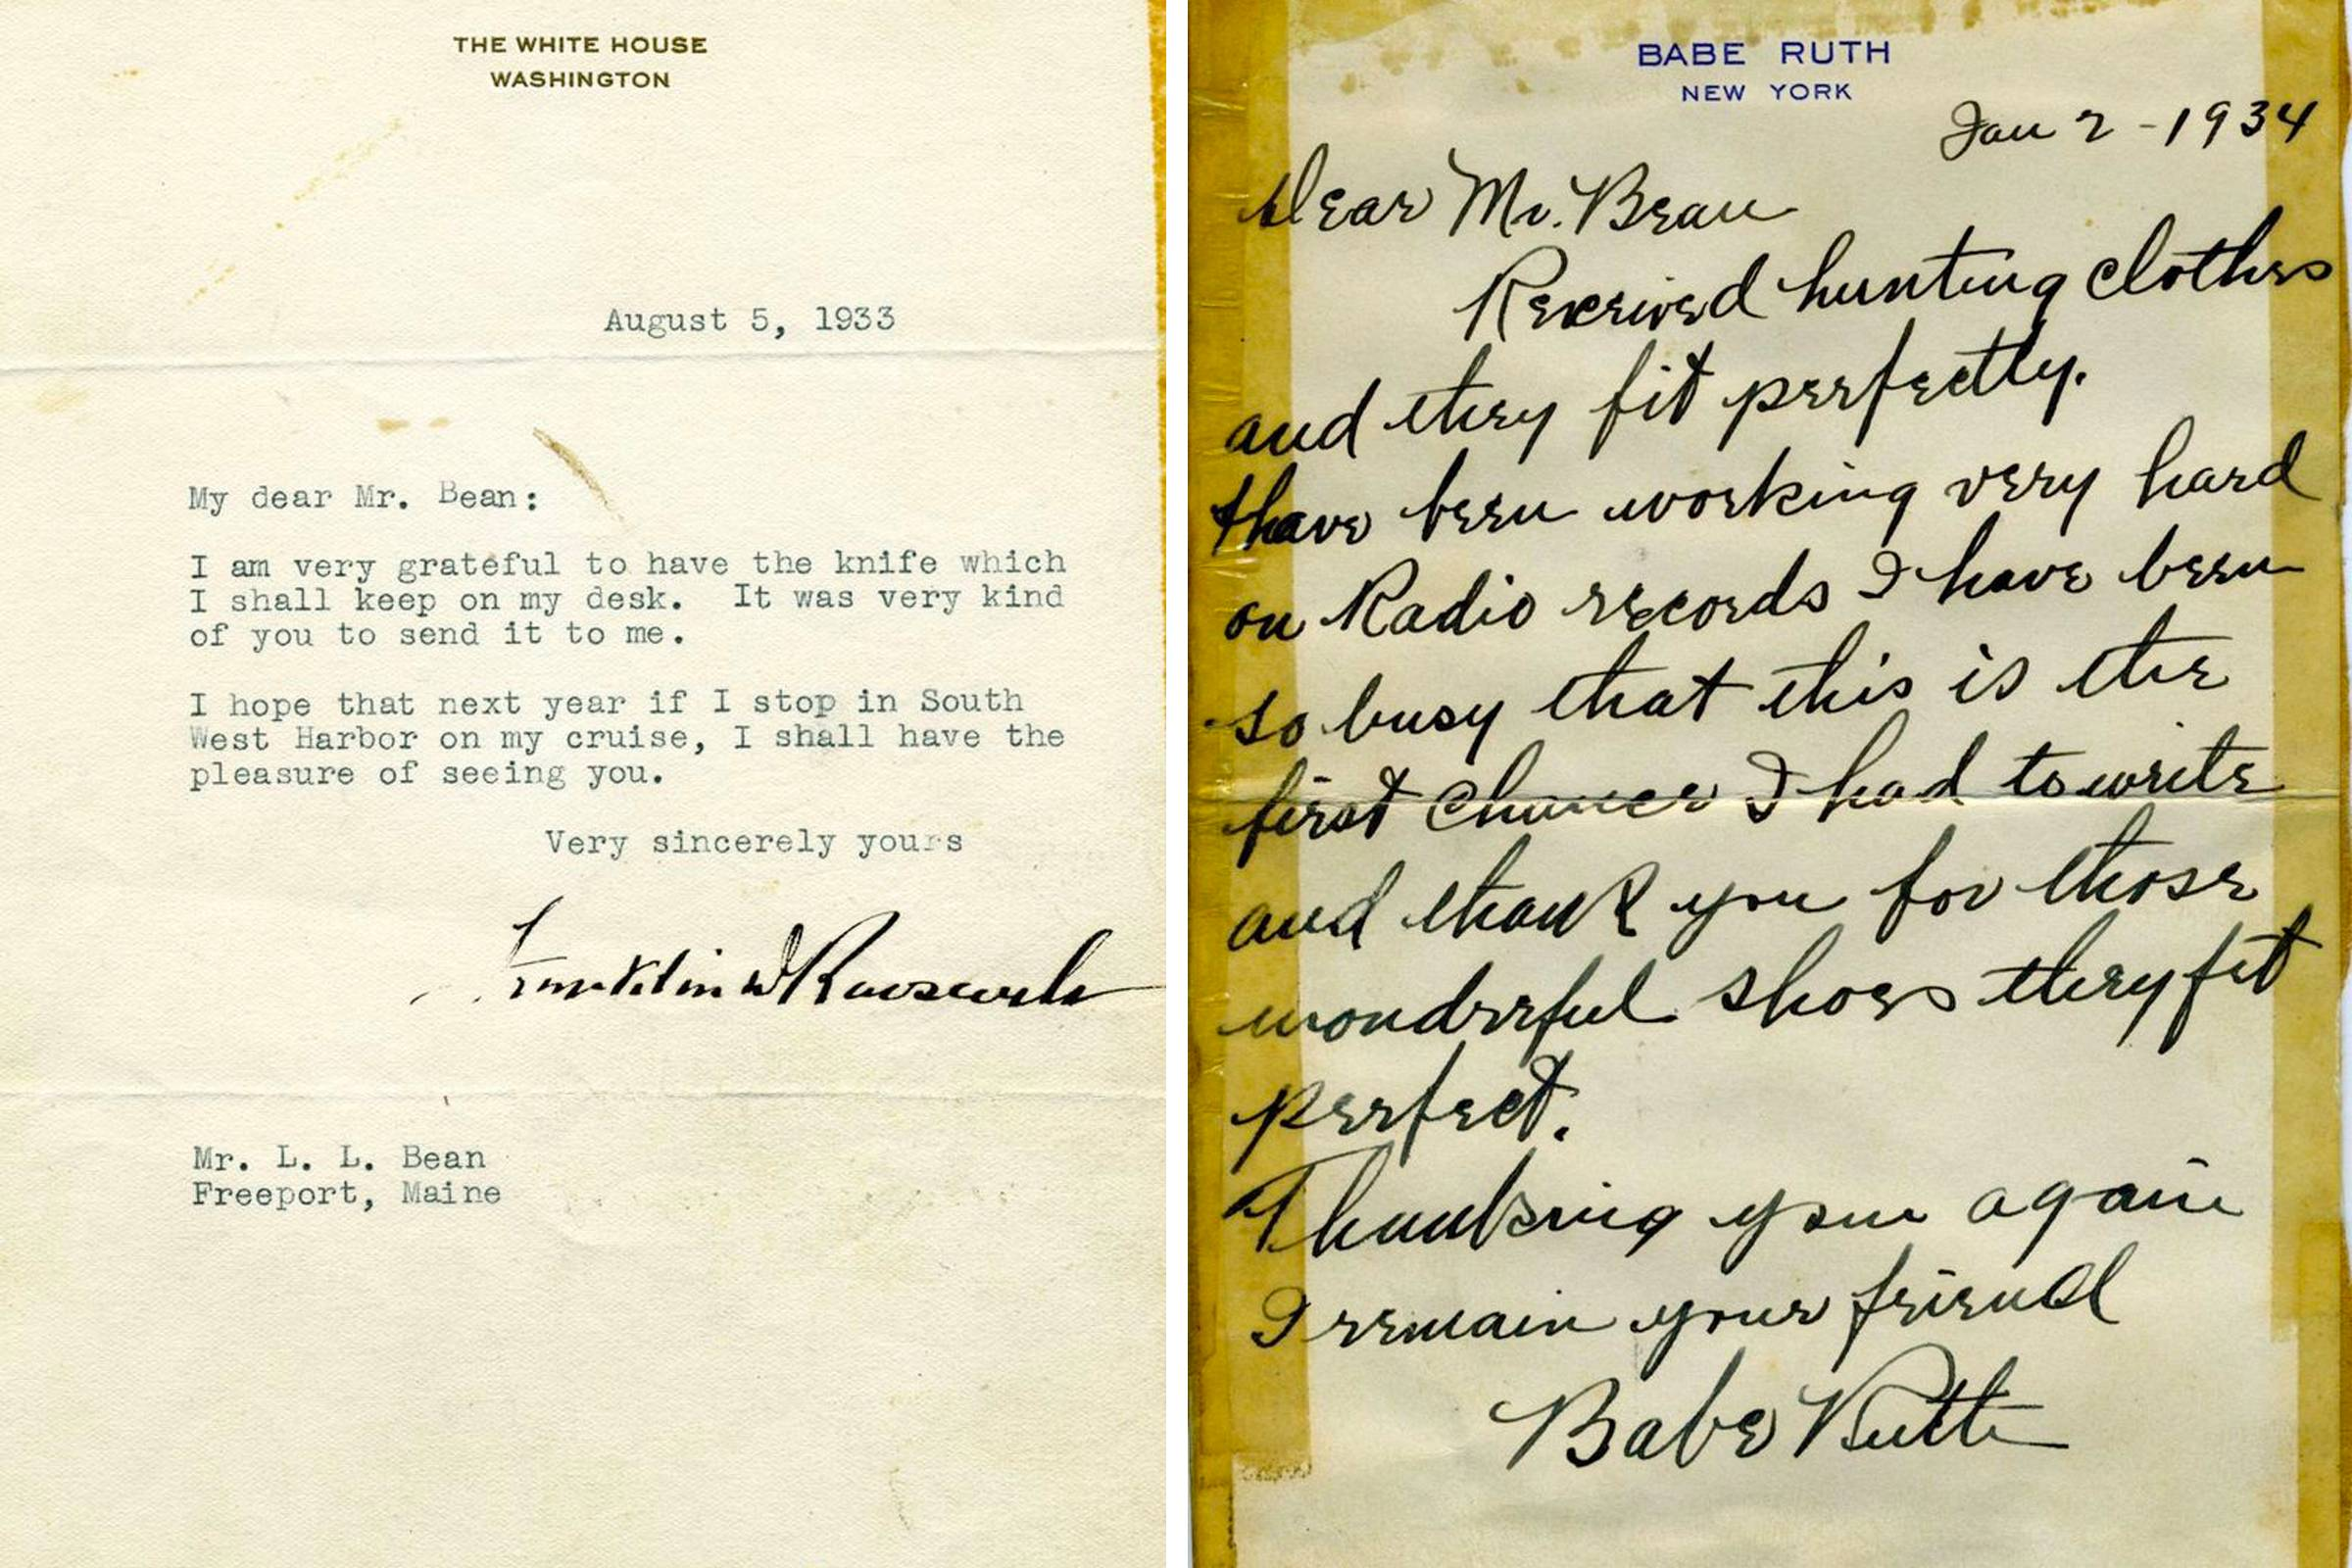 Letters from United States President Franklin D. Roosevelt (left) and baseball legend Babe Ruth to L.L. Bean